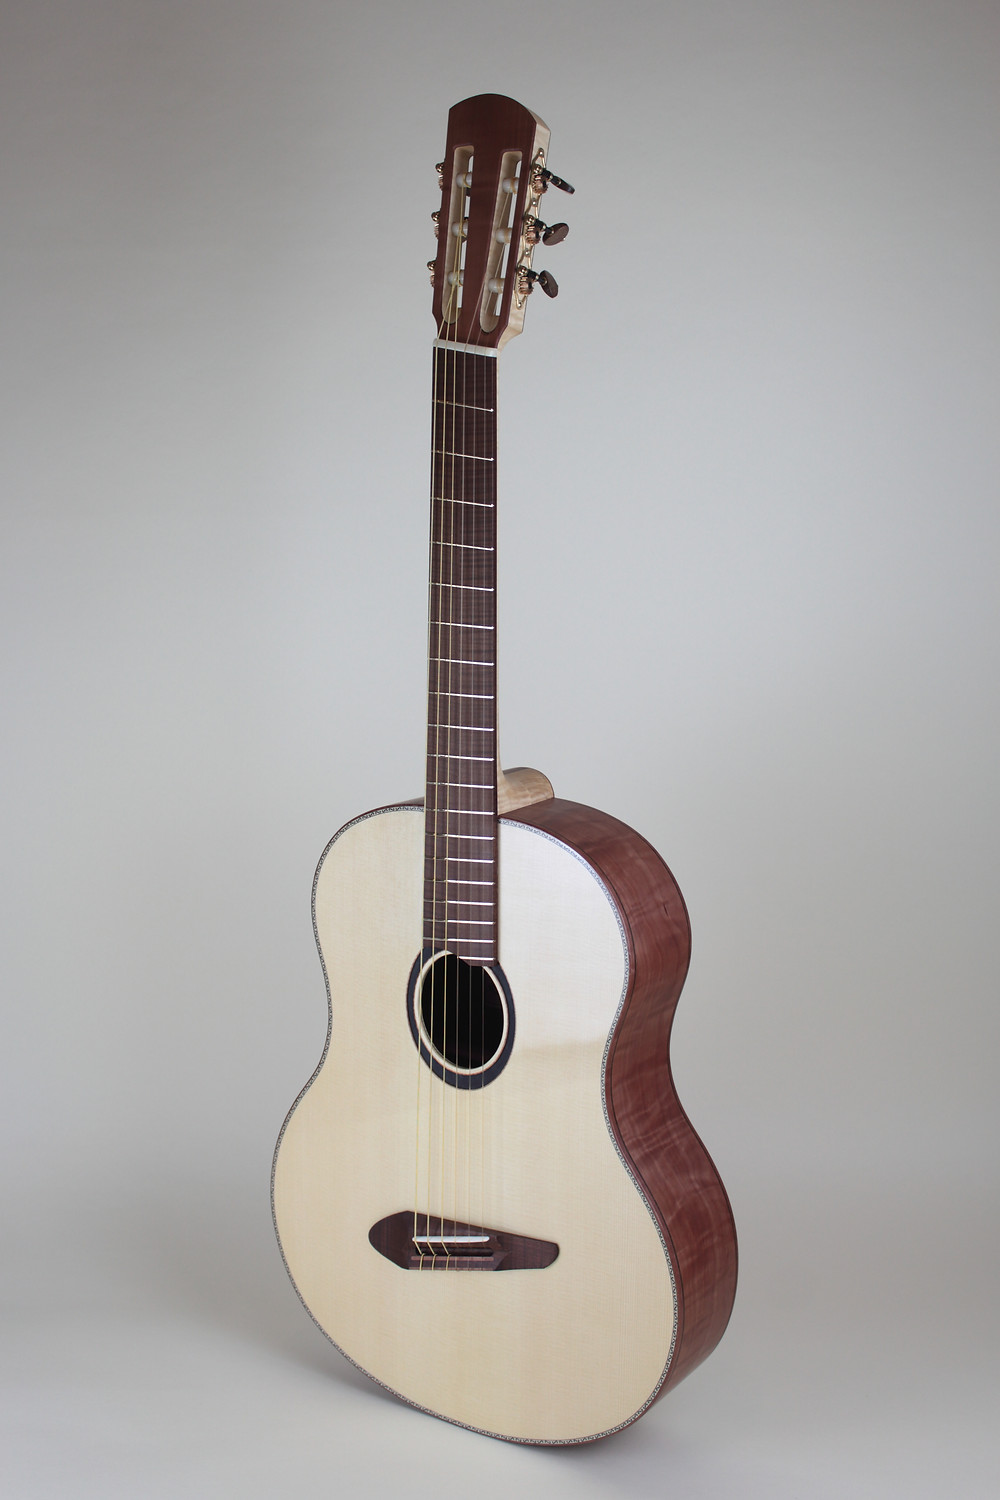 baritone ukulele torrefied local wood